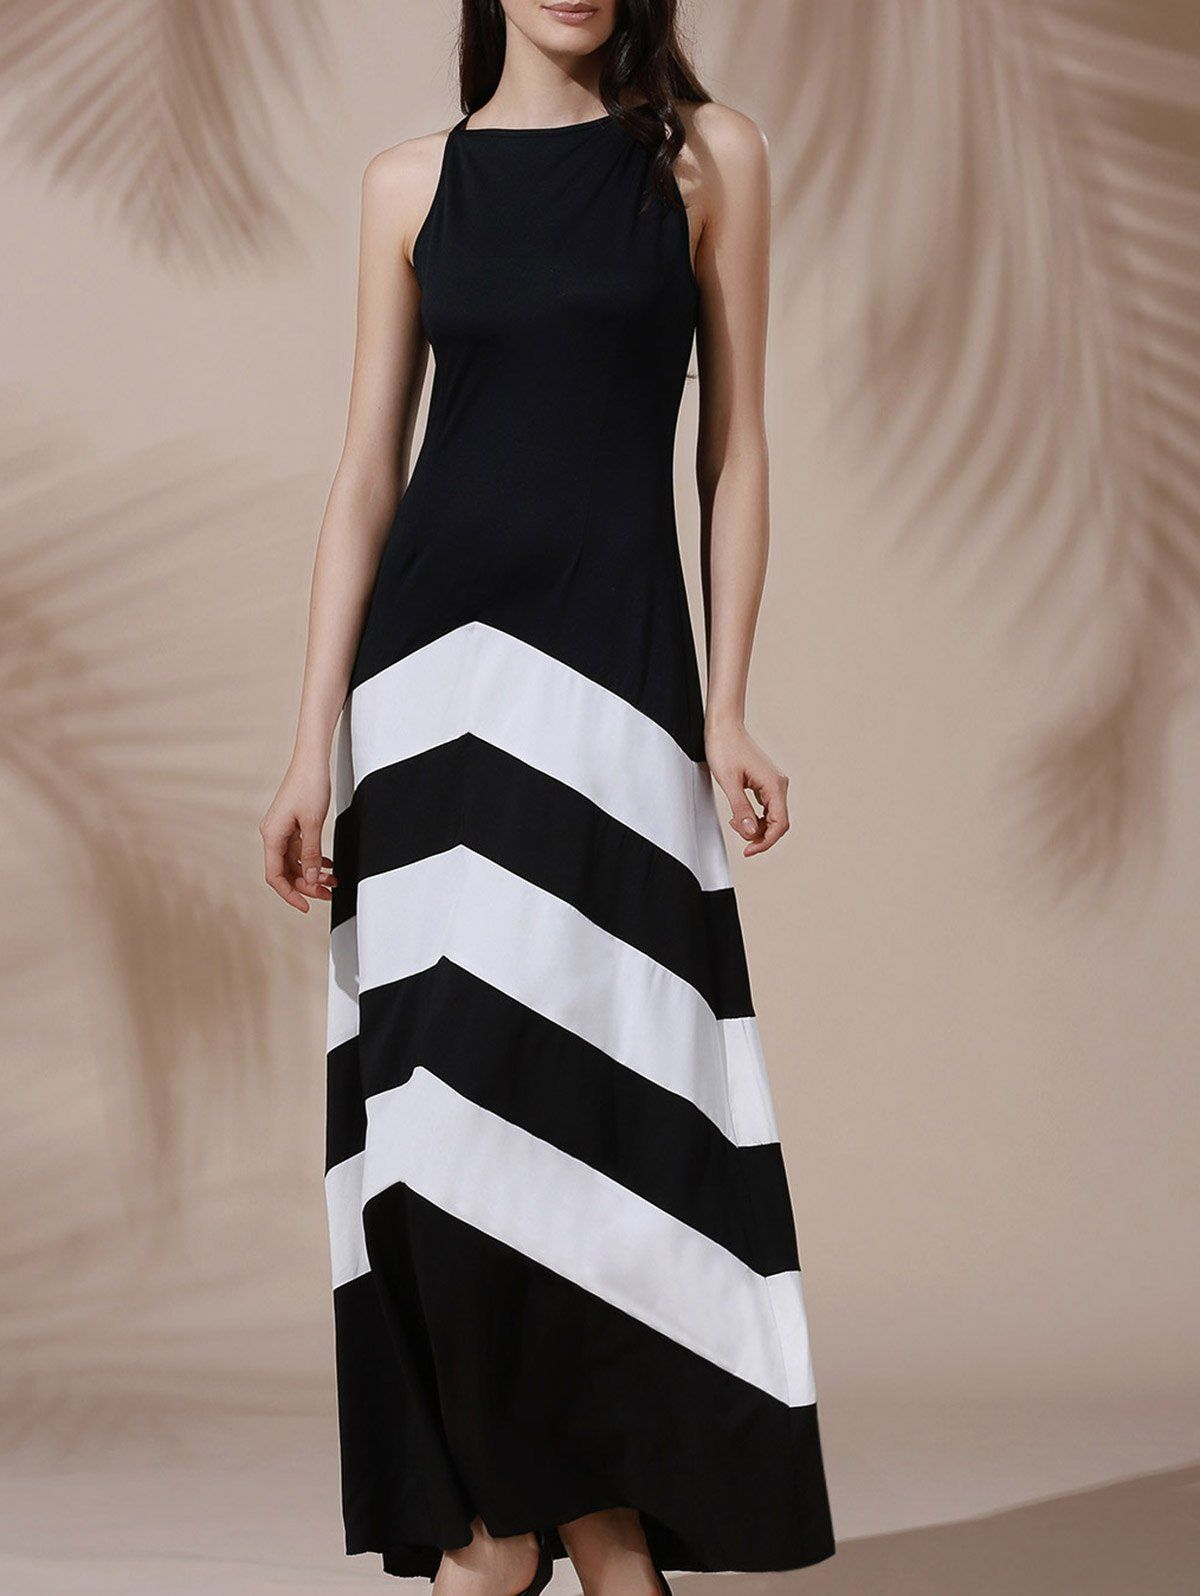 09eb5b3e050 Sexy Black and White Chevron Sleeveless Color Block Maxi Dress For Women   Black and White  Maxi Dresses  Summer Dresses